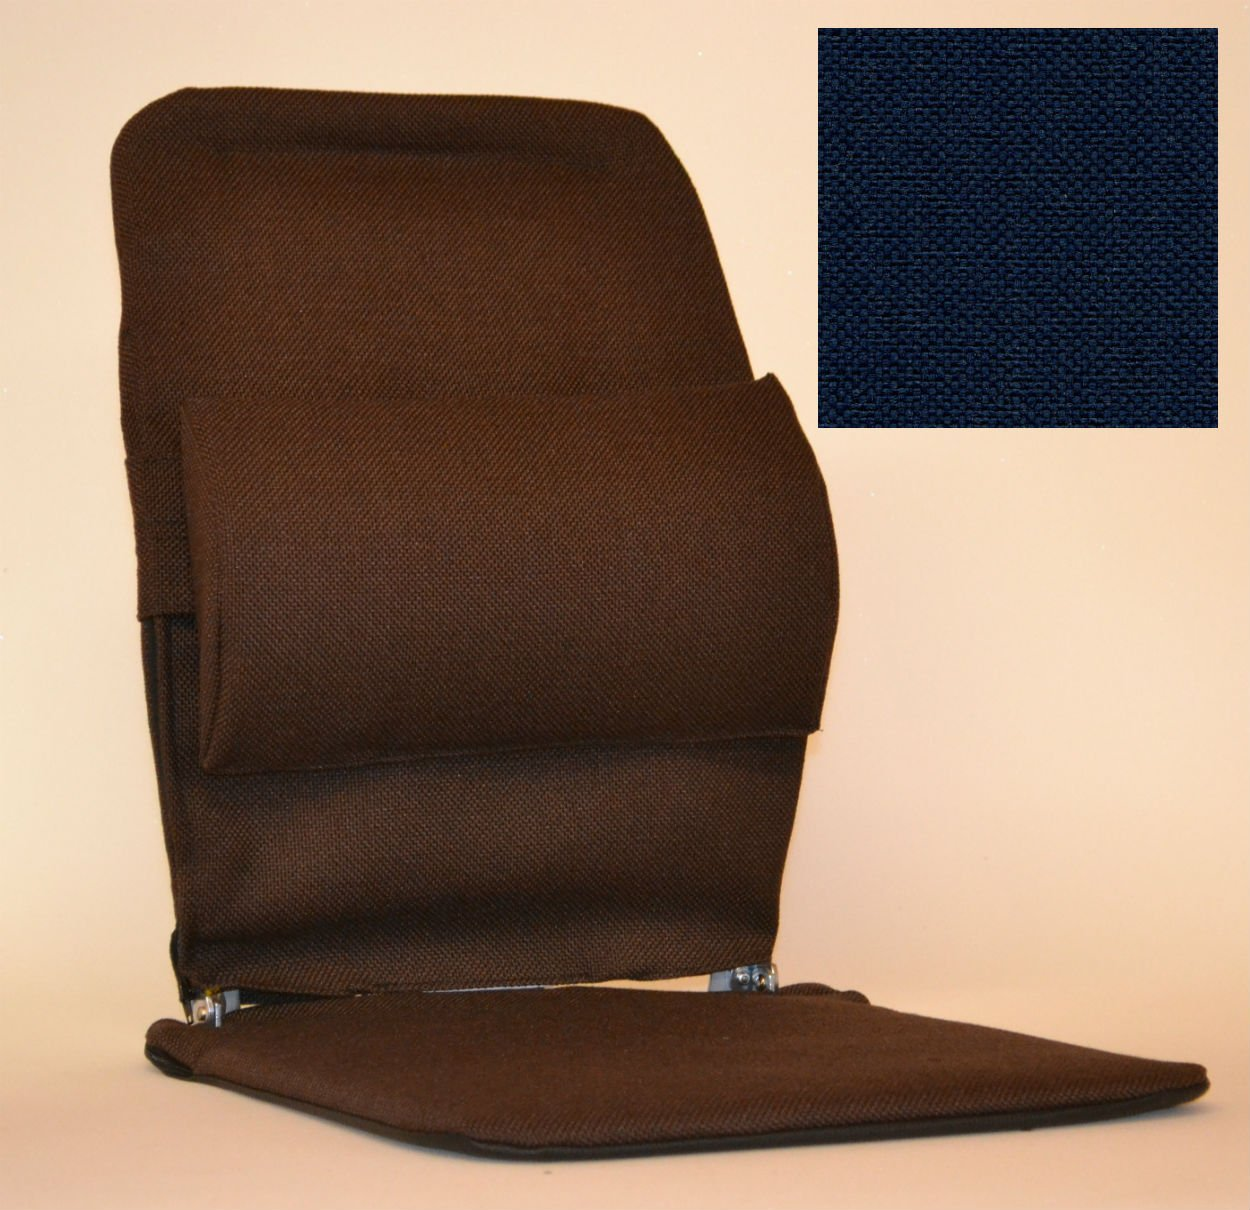 McCartys Sacroease Car Seat Support BRSM-BLUE by McCarty's